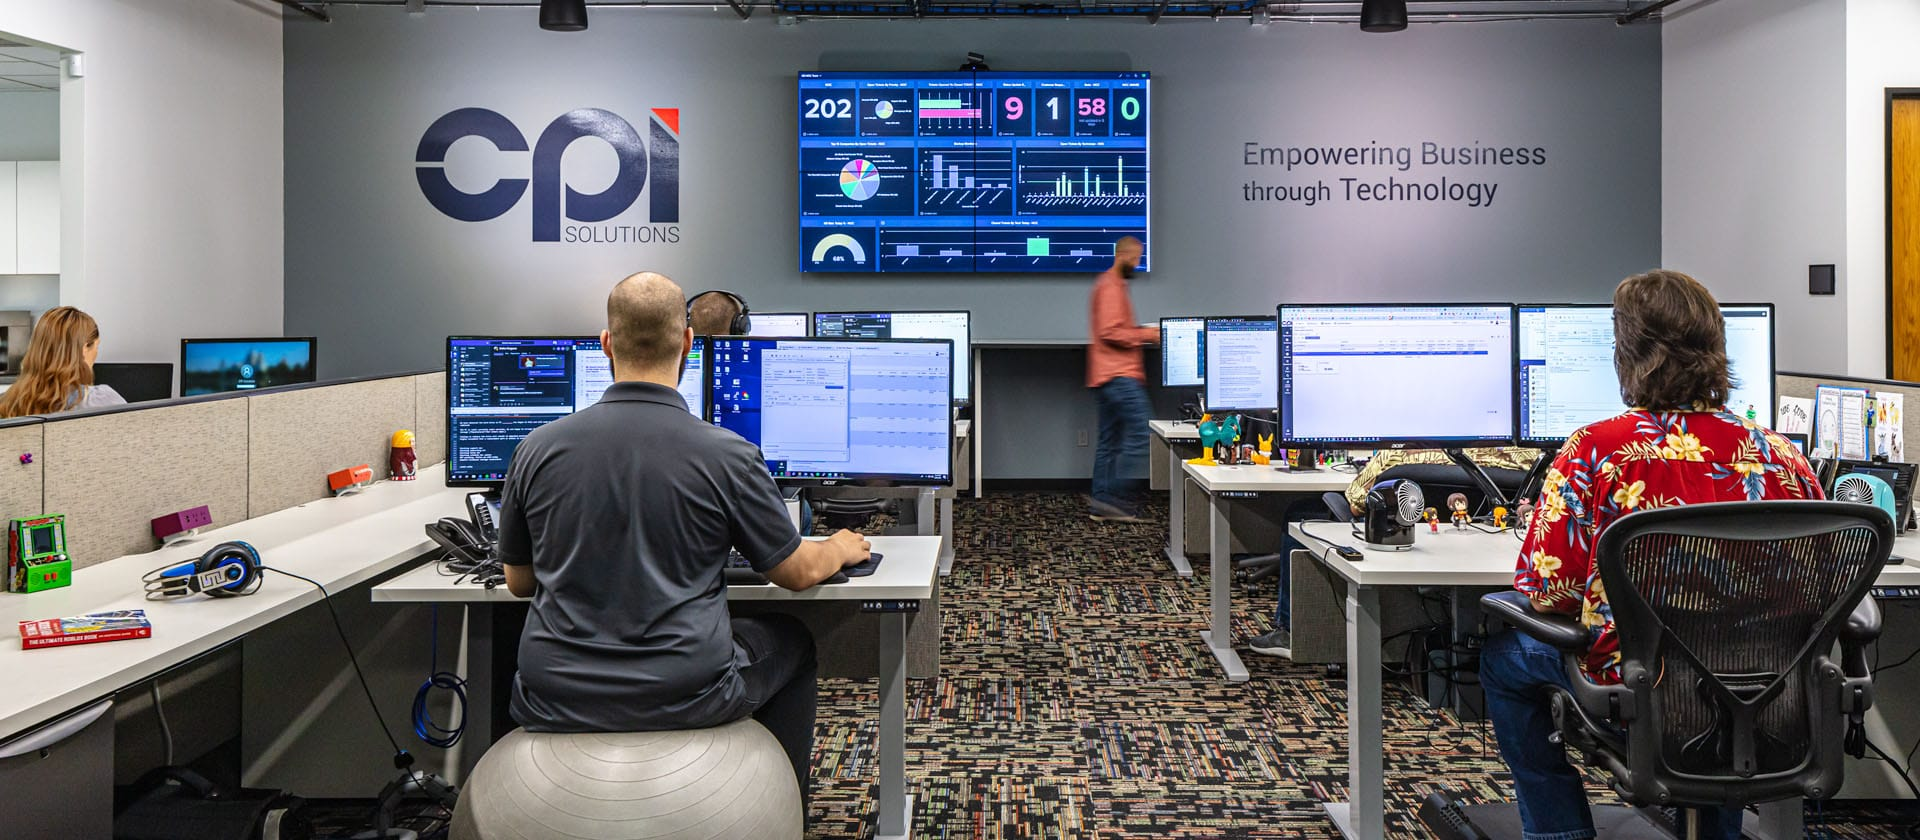 Managed IT services provide proactive IT support, cloud services, IT management and IT outsourcing with programs in NetManage & NetManage Essential for Los Angeles, Ventura, Orange and San Diego counties.